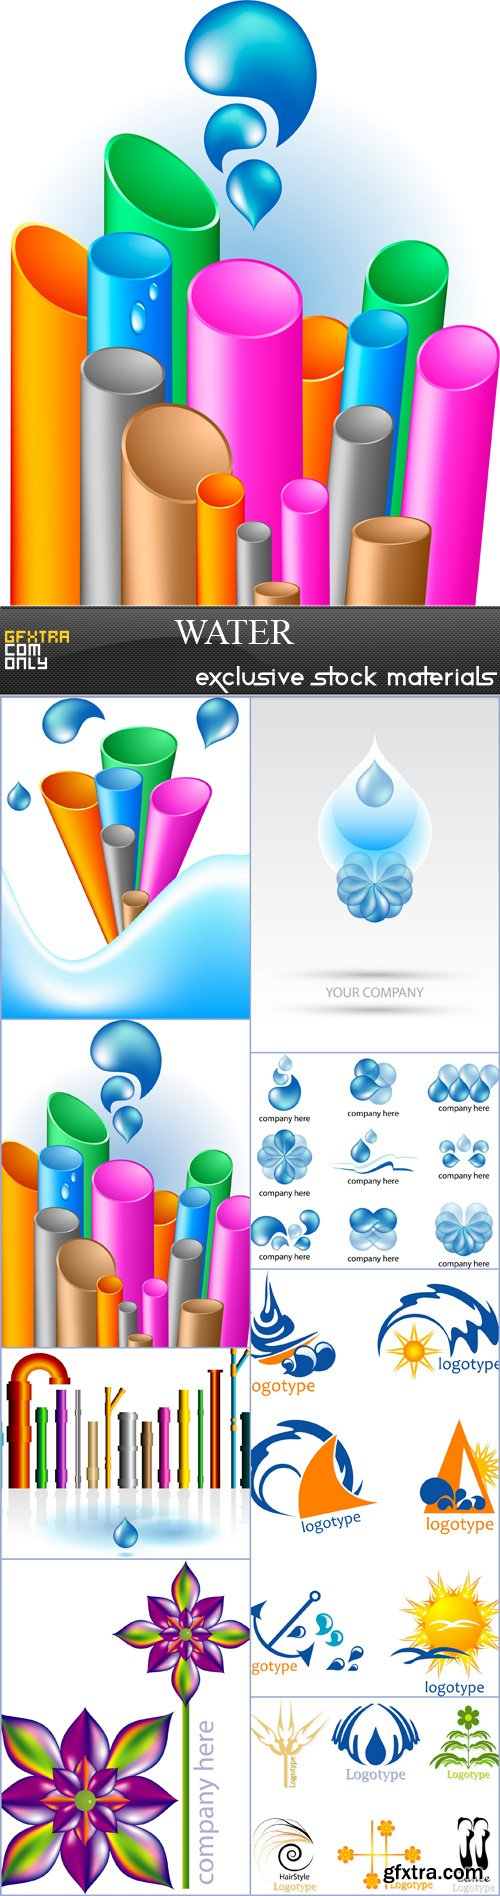 Water - 8 EPS